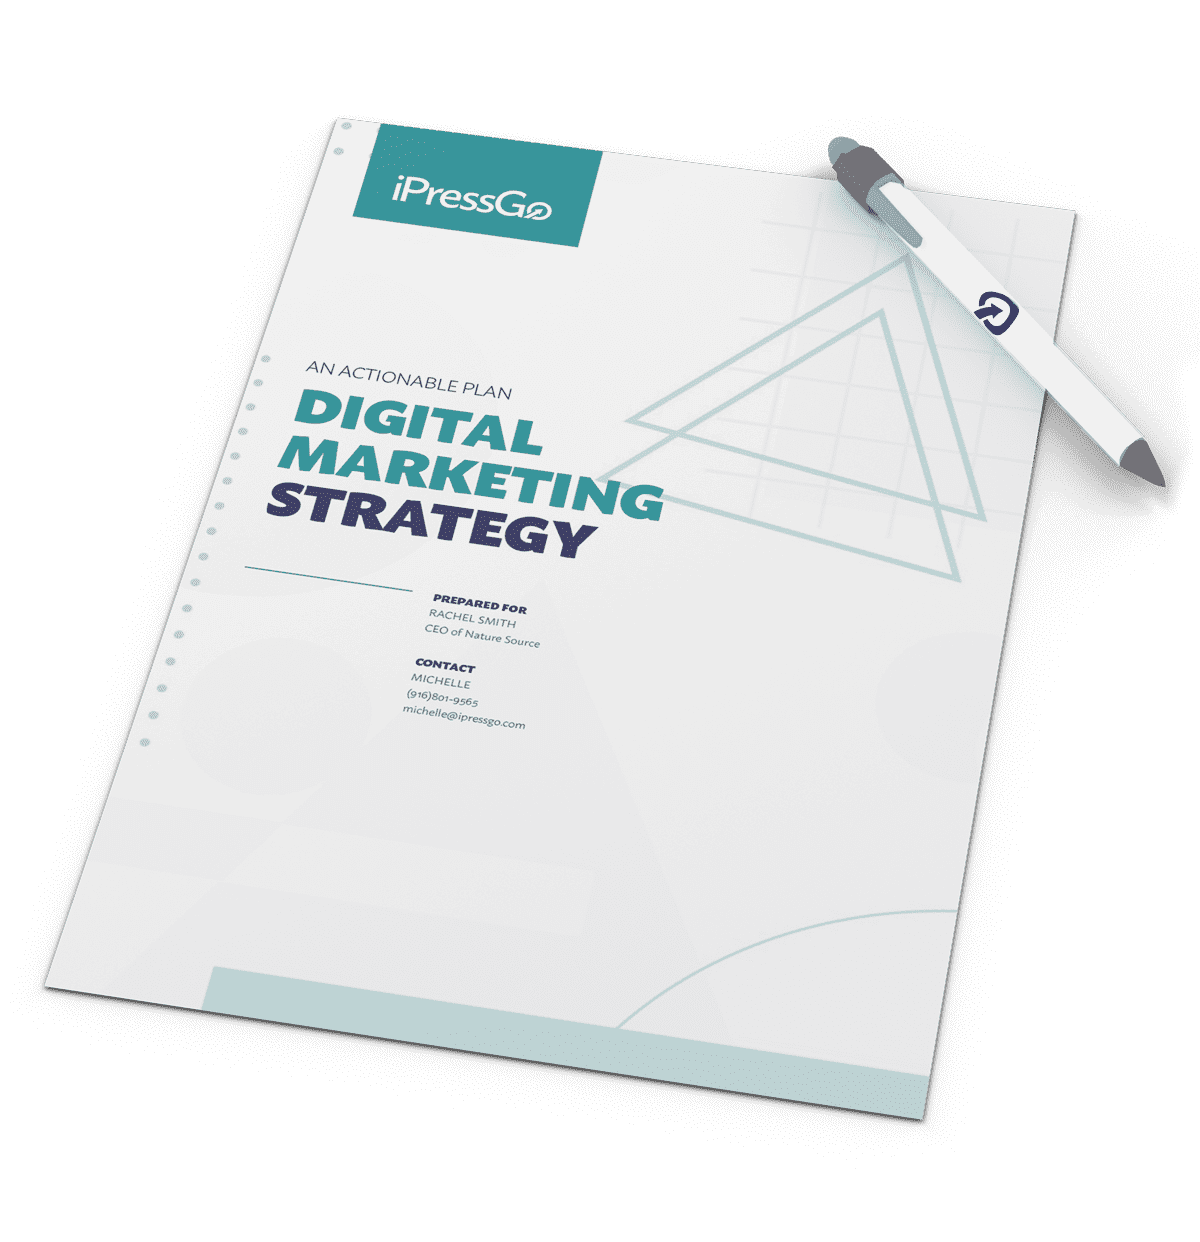 iPressGo Digital Marketing Strategy